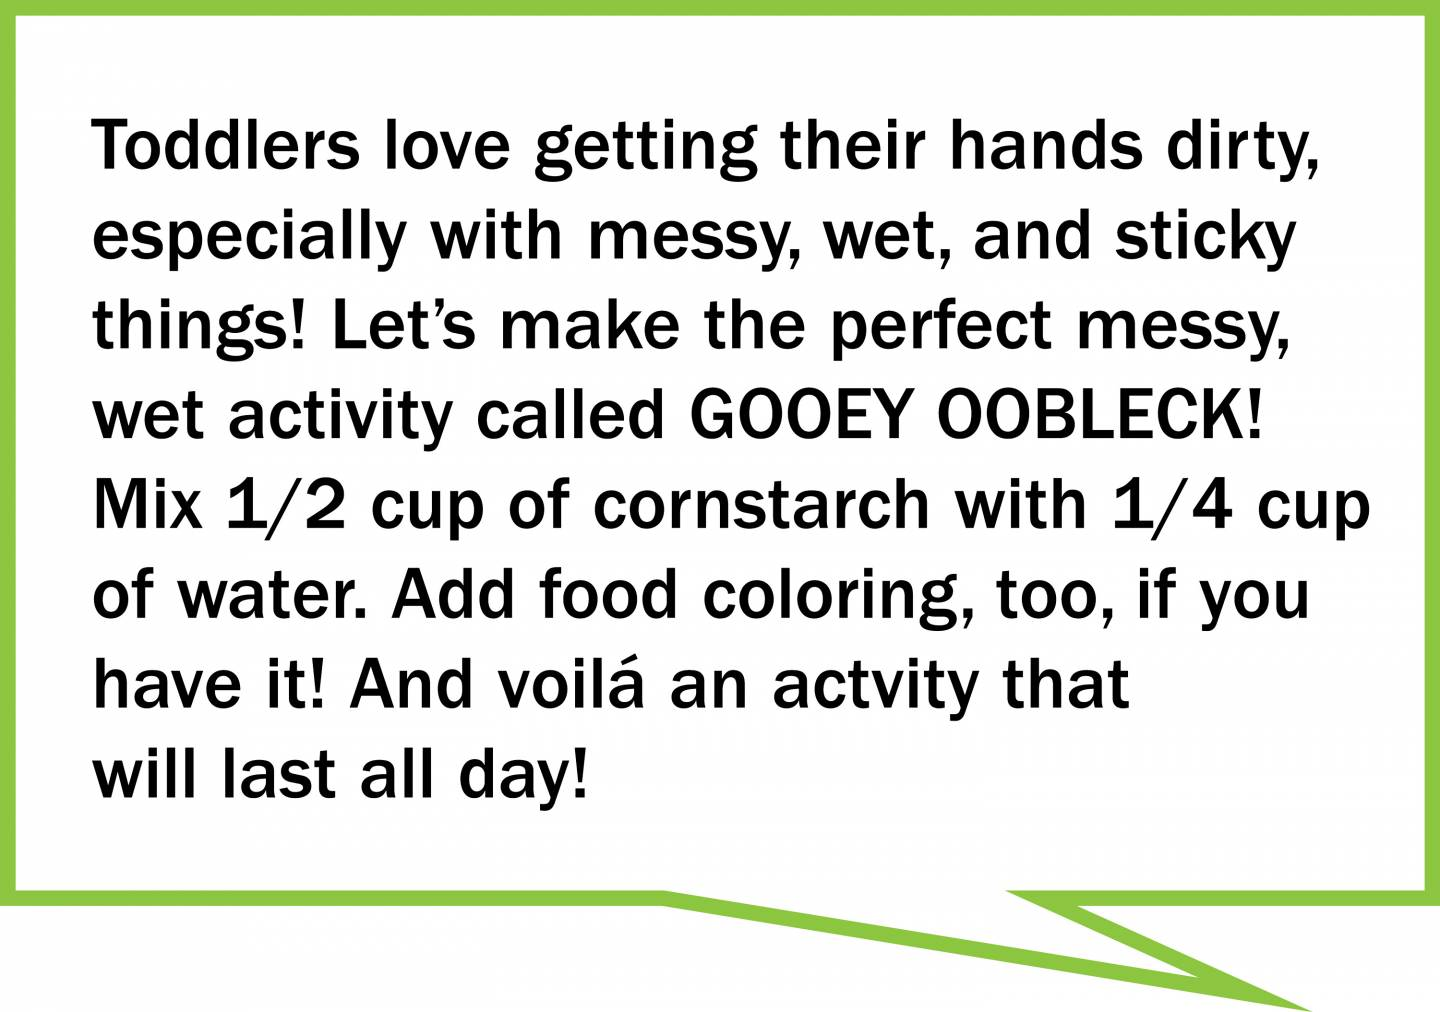 Toddlers love getting their hands dirty, especially with messy, wet, and sticky  things! Let's make the perfect messy, wet activity called GOOEY OOBLECK!  Mix 1/2 cup of cornstarch with 1/4 cup  of water. Add food coloring, too, if you have it! And voilá an actvity that will last all day!